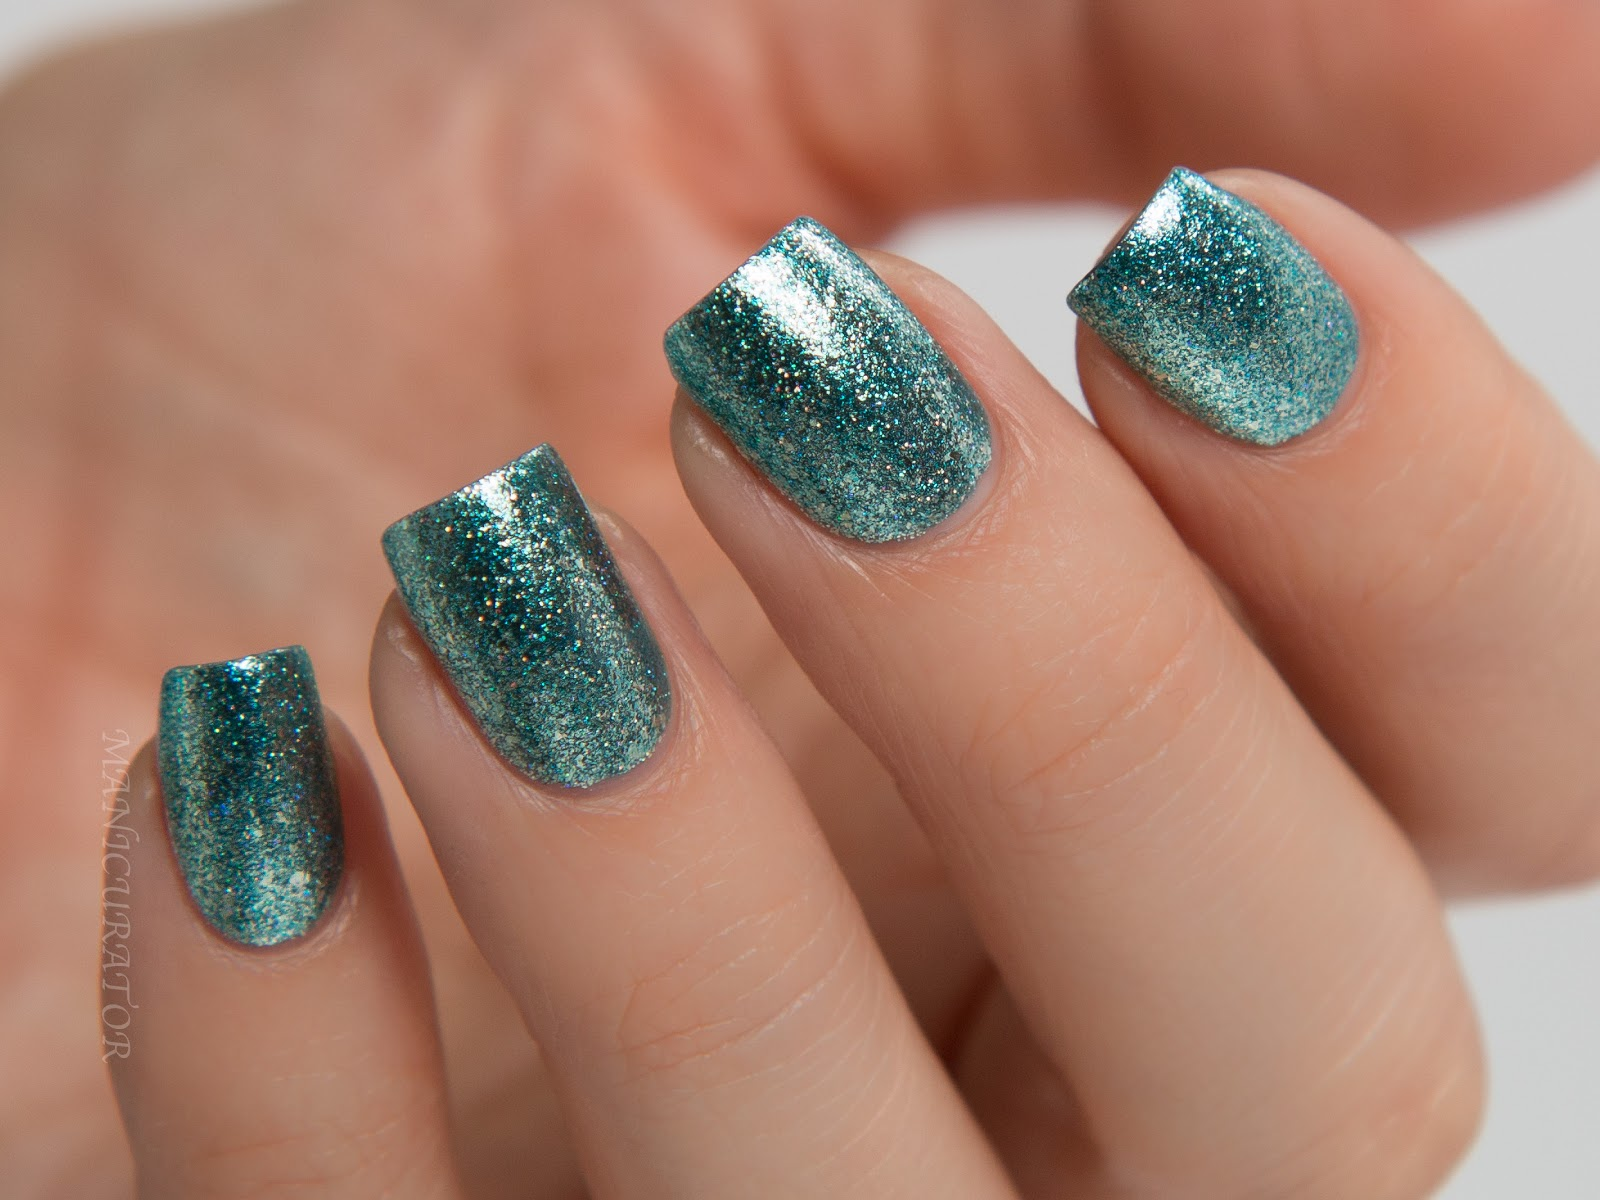 Kbshimmer Birthstone Collection 2016 Nail Art Opposites Attract